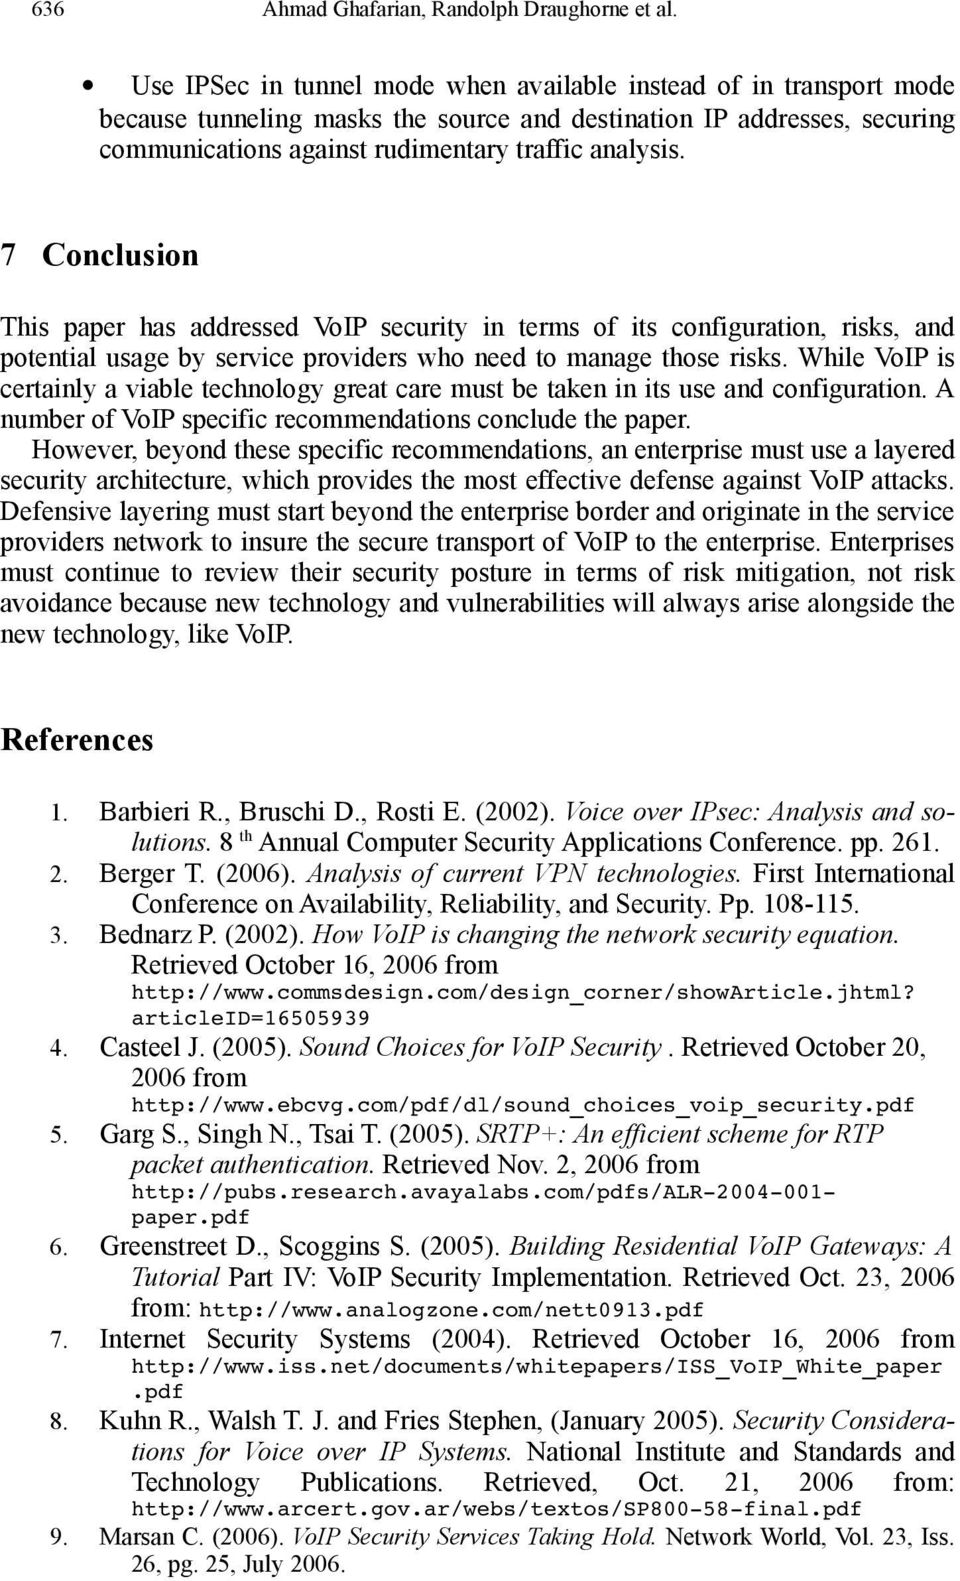 7 Conclusion This paper has addressed VoIP security in terms of its configuration, risks, and potential usage by service providers who need to manage those risks.